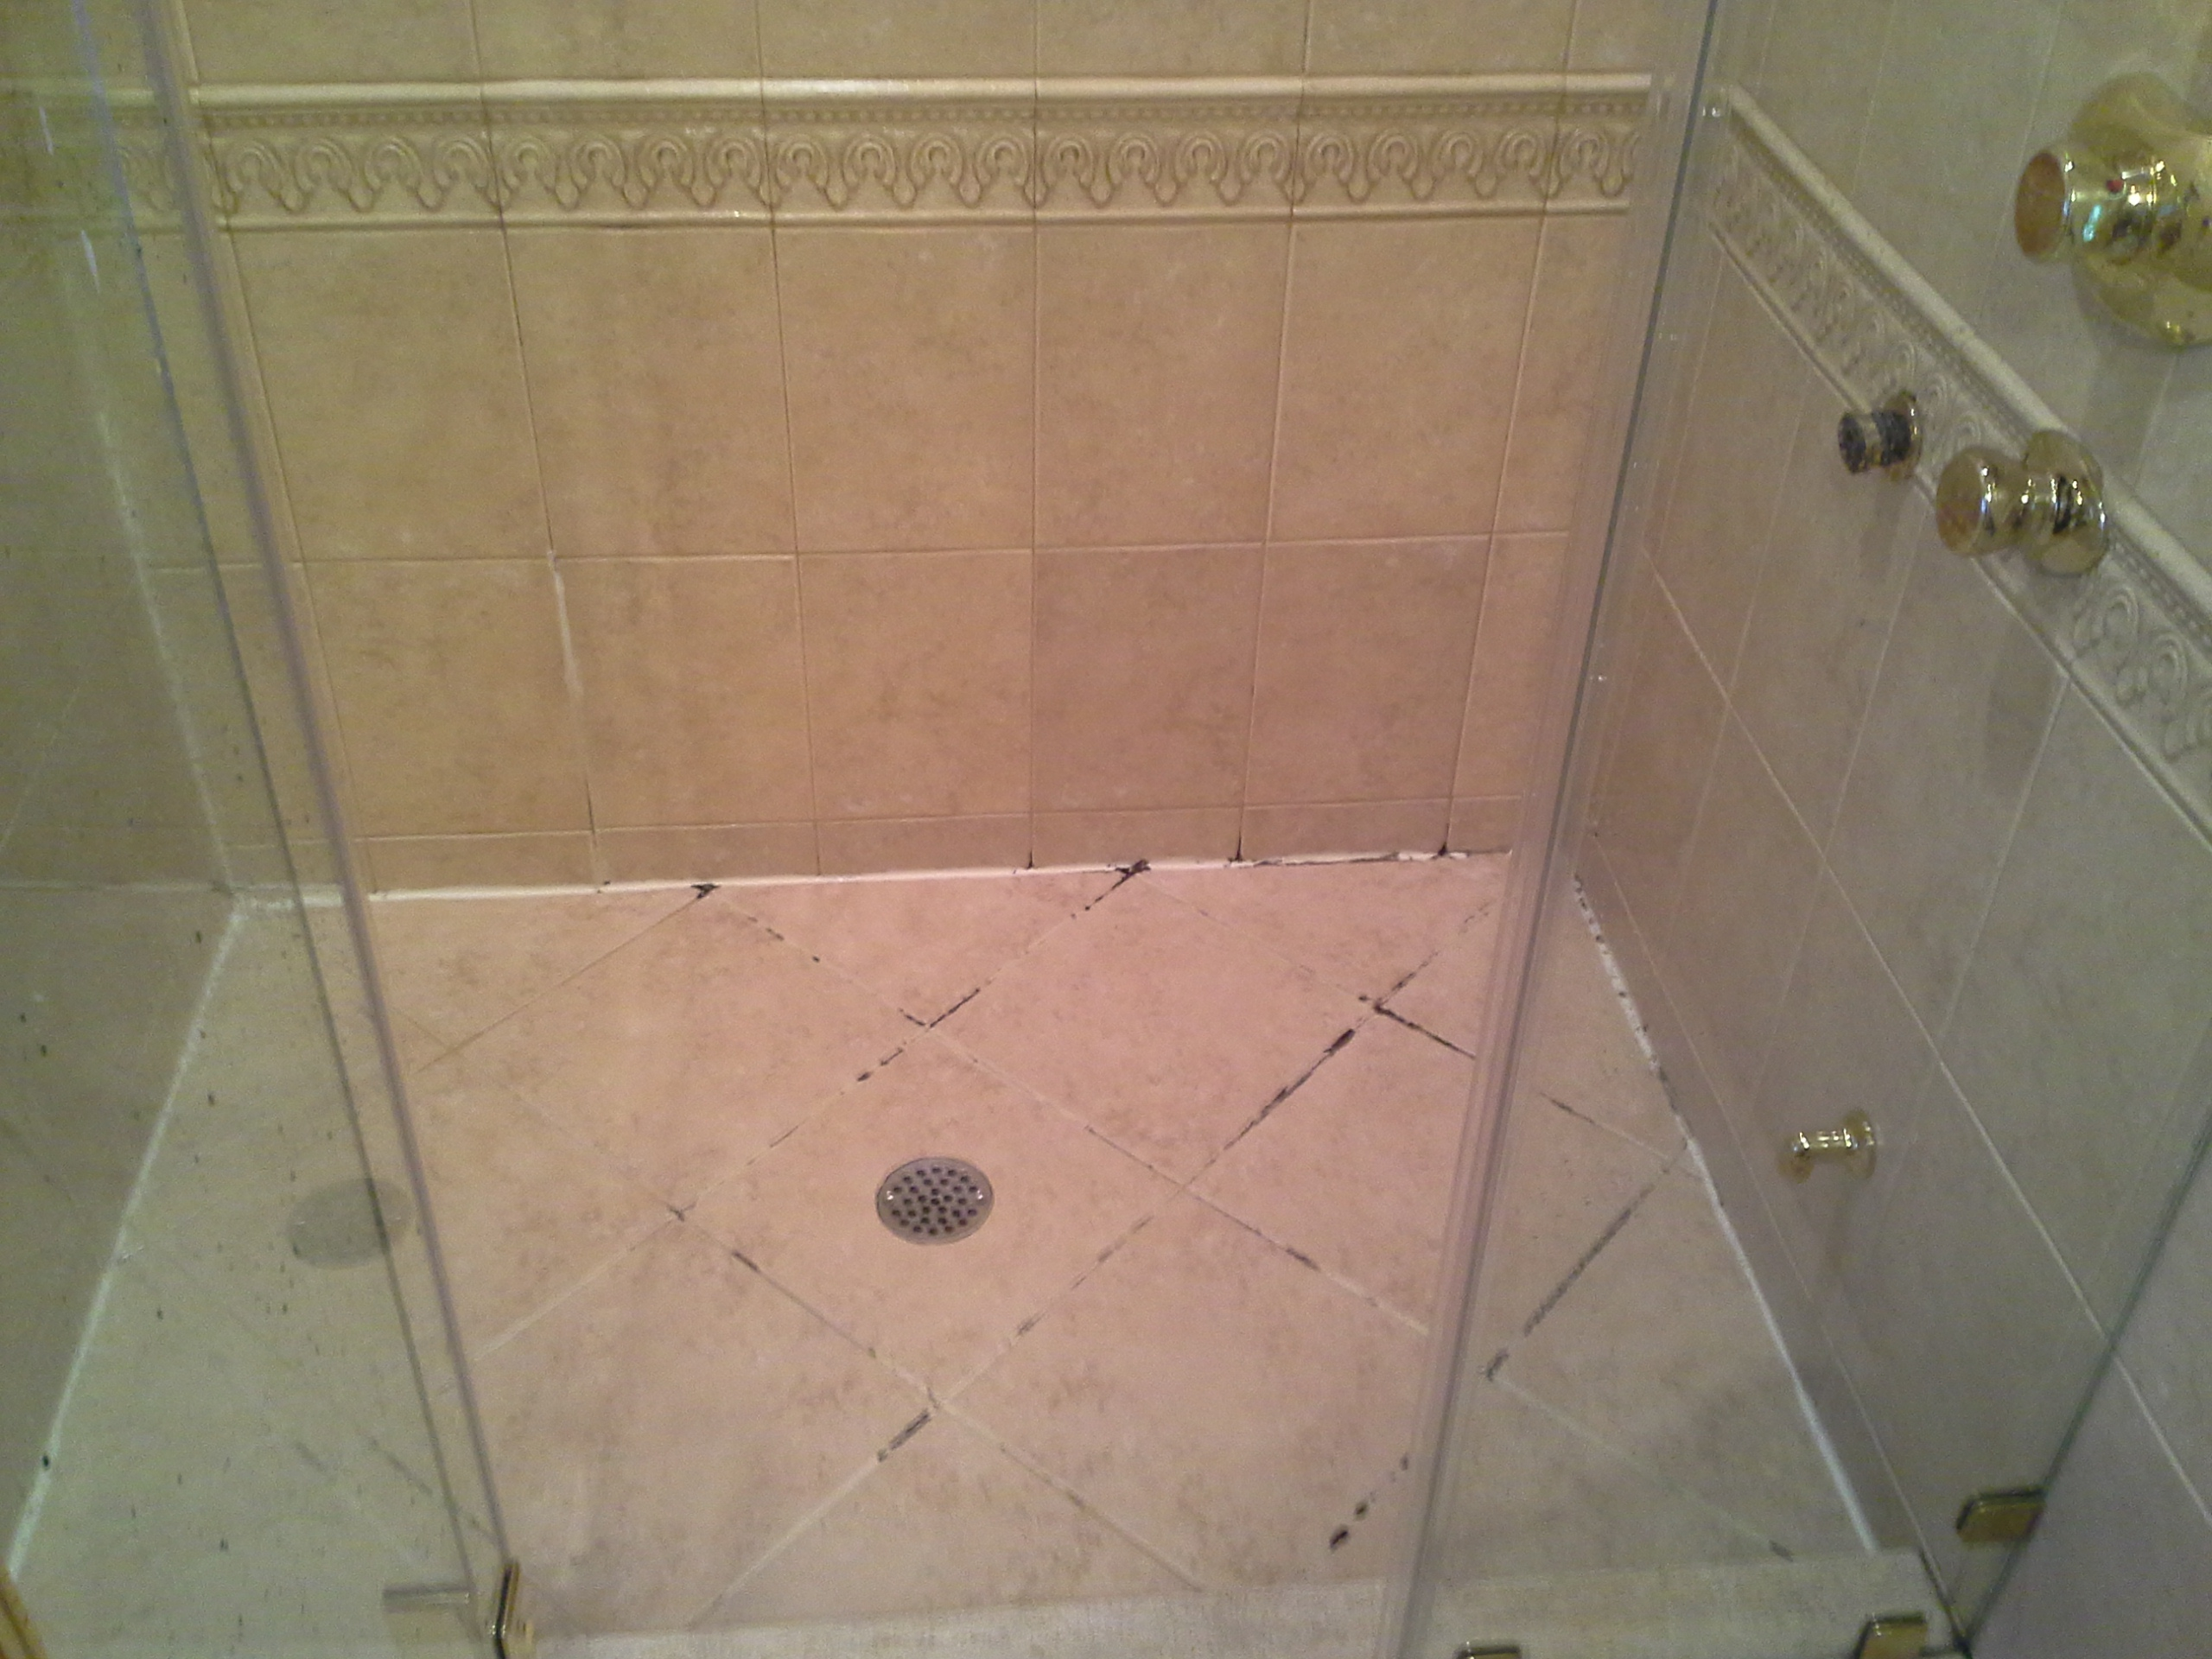 Moldy Shower Grout Caulk Bathroom Grout Repair Vs Dirty Foyer Kitchen Grout By Grout Works